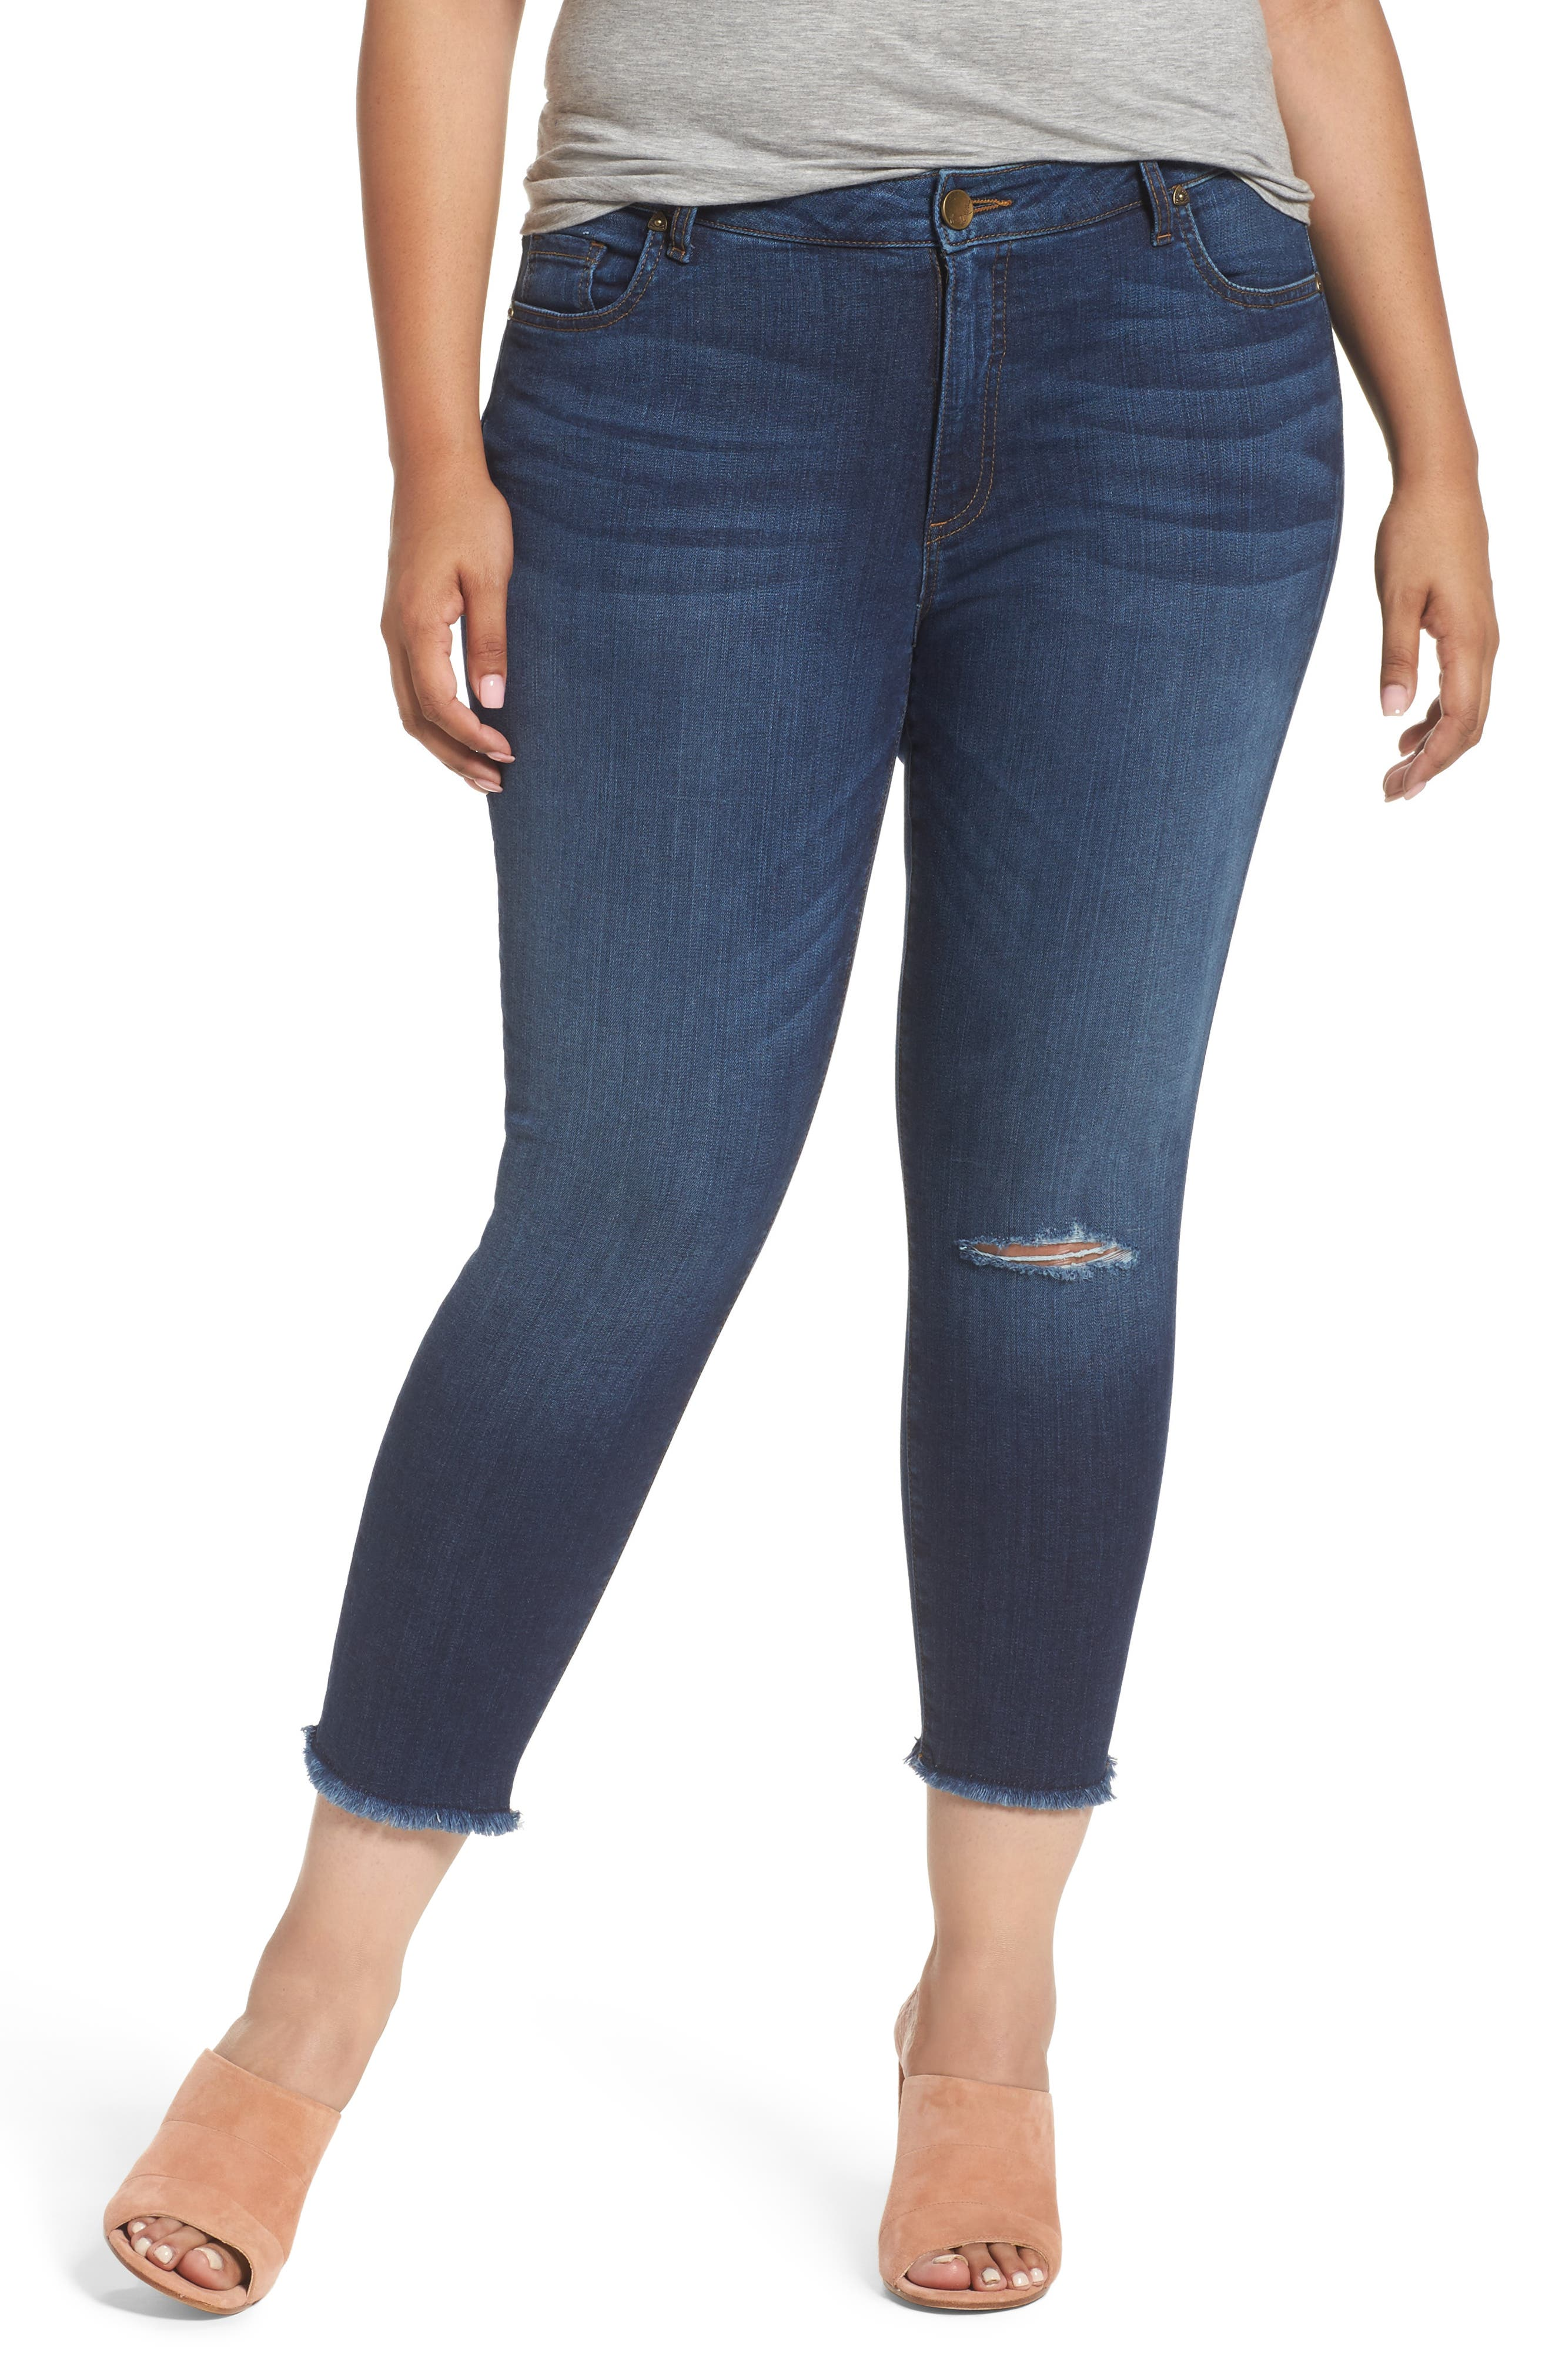 KUT from the Kloth Donna Ripped Crop Skinny Jeans (Peaceable) (Plus Size)